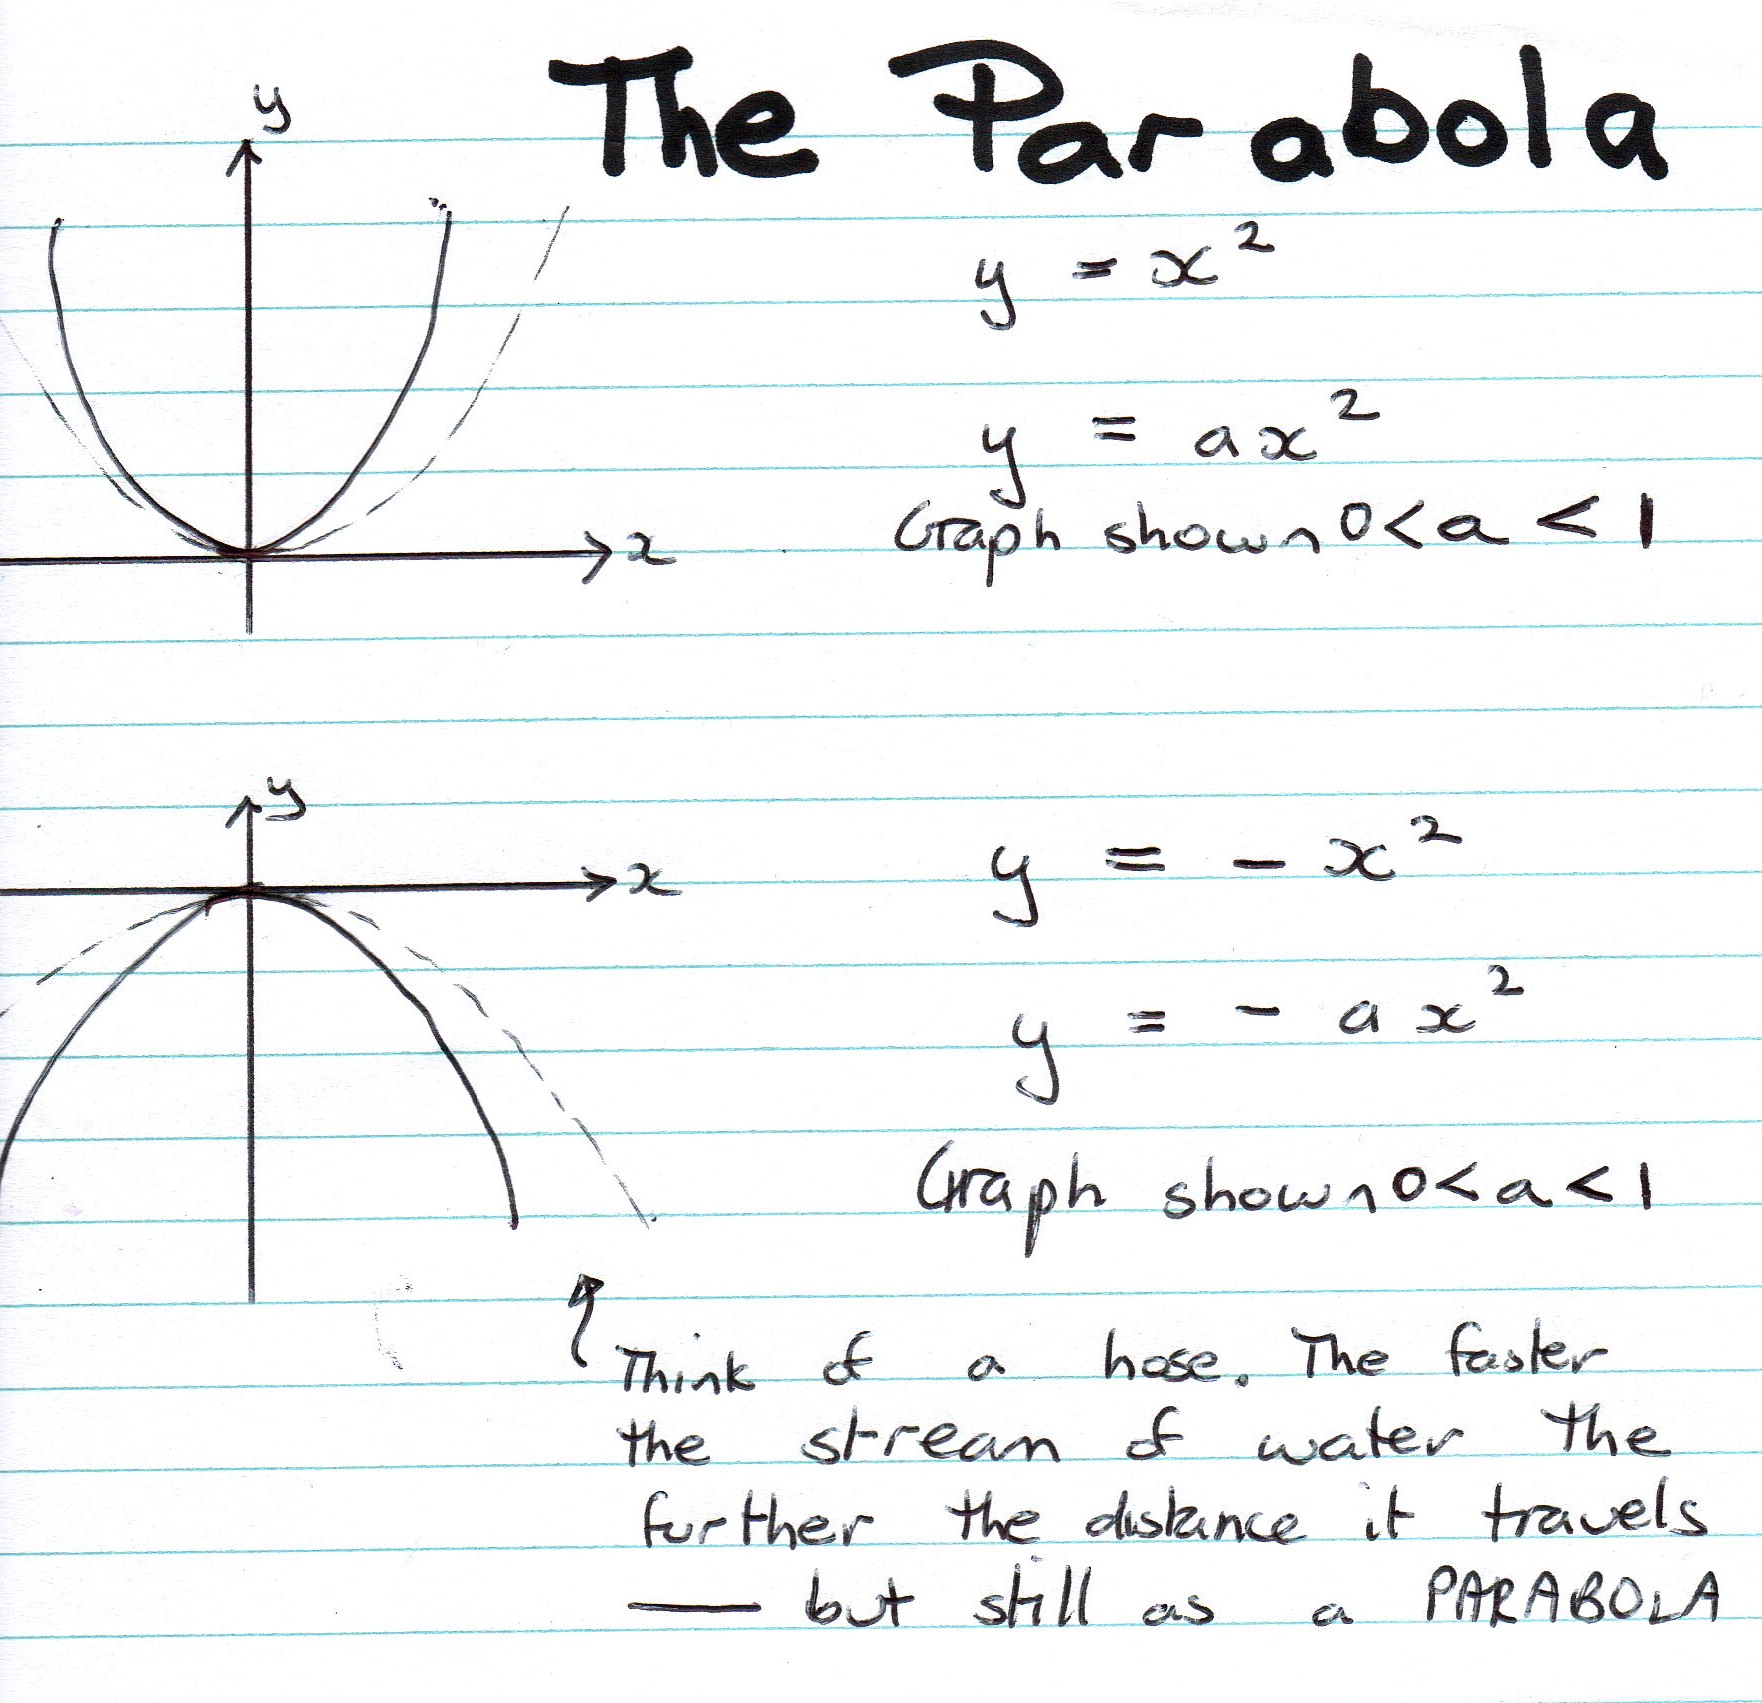 worksheet Parabola Worksheet parabola correction mathspig blog how maths solved a real murder correction